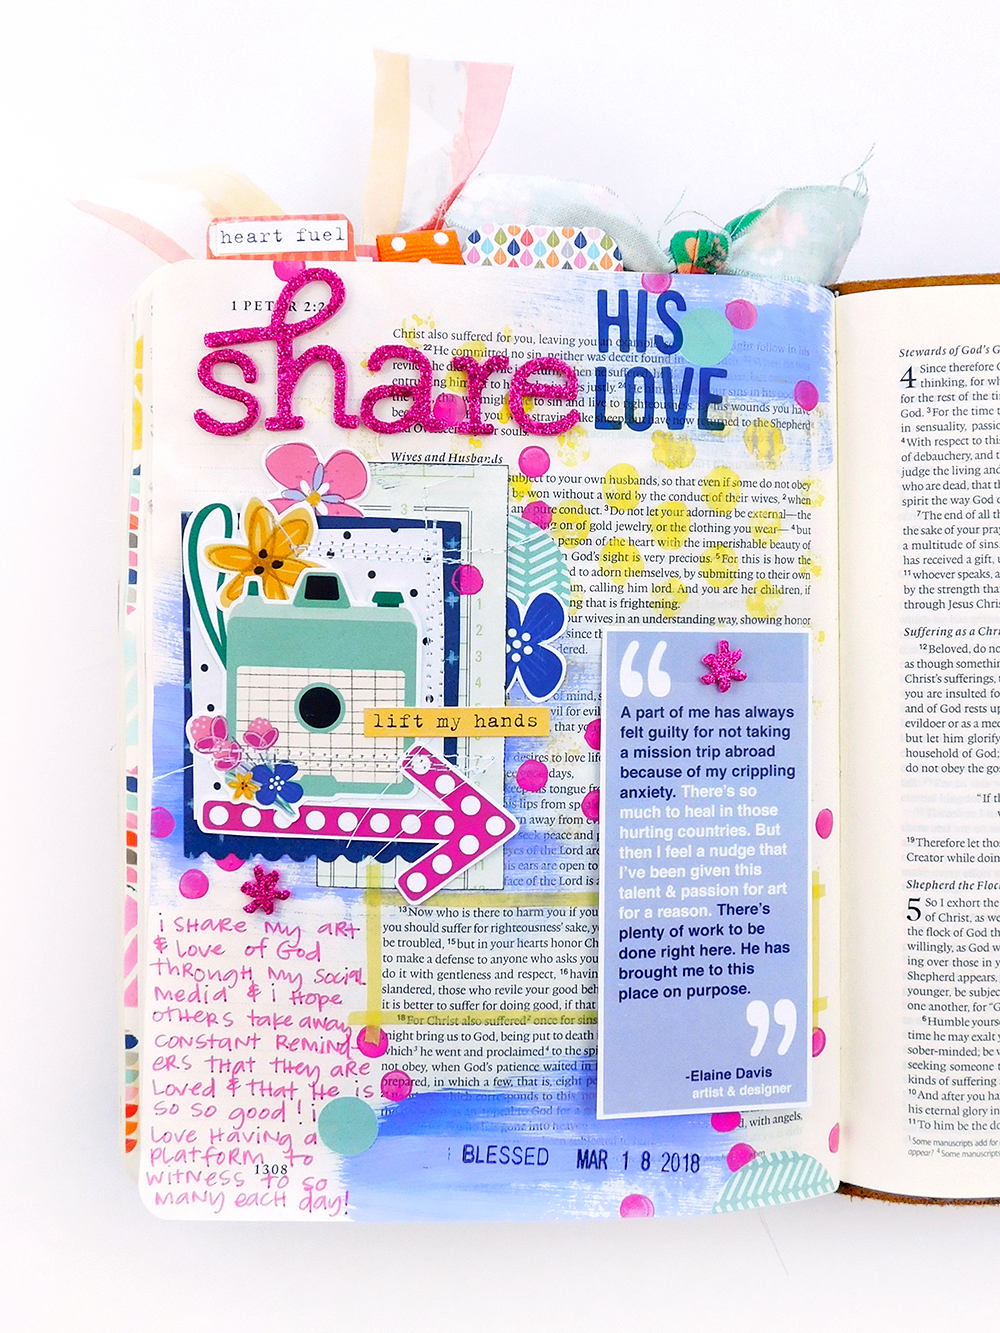 Mixed Media Hybrid Bible Journaling by Elaine Davis using digital printables | Insta-Love